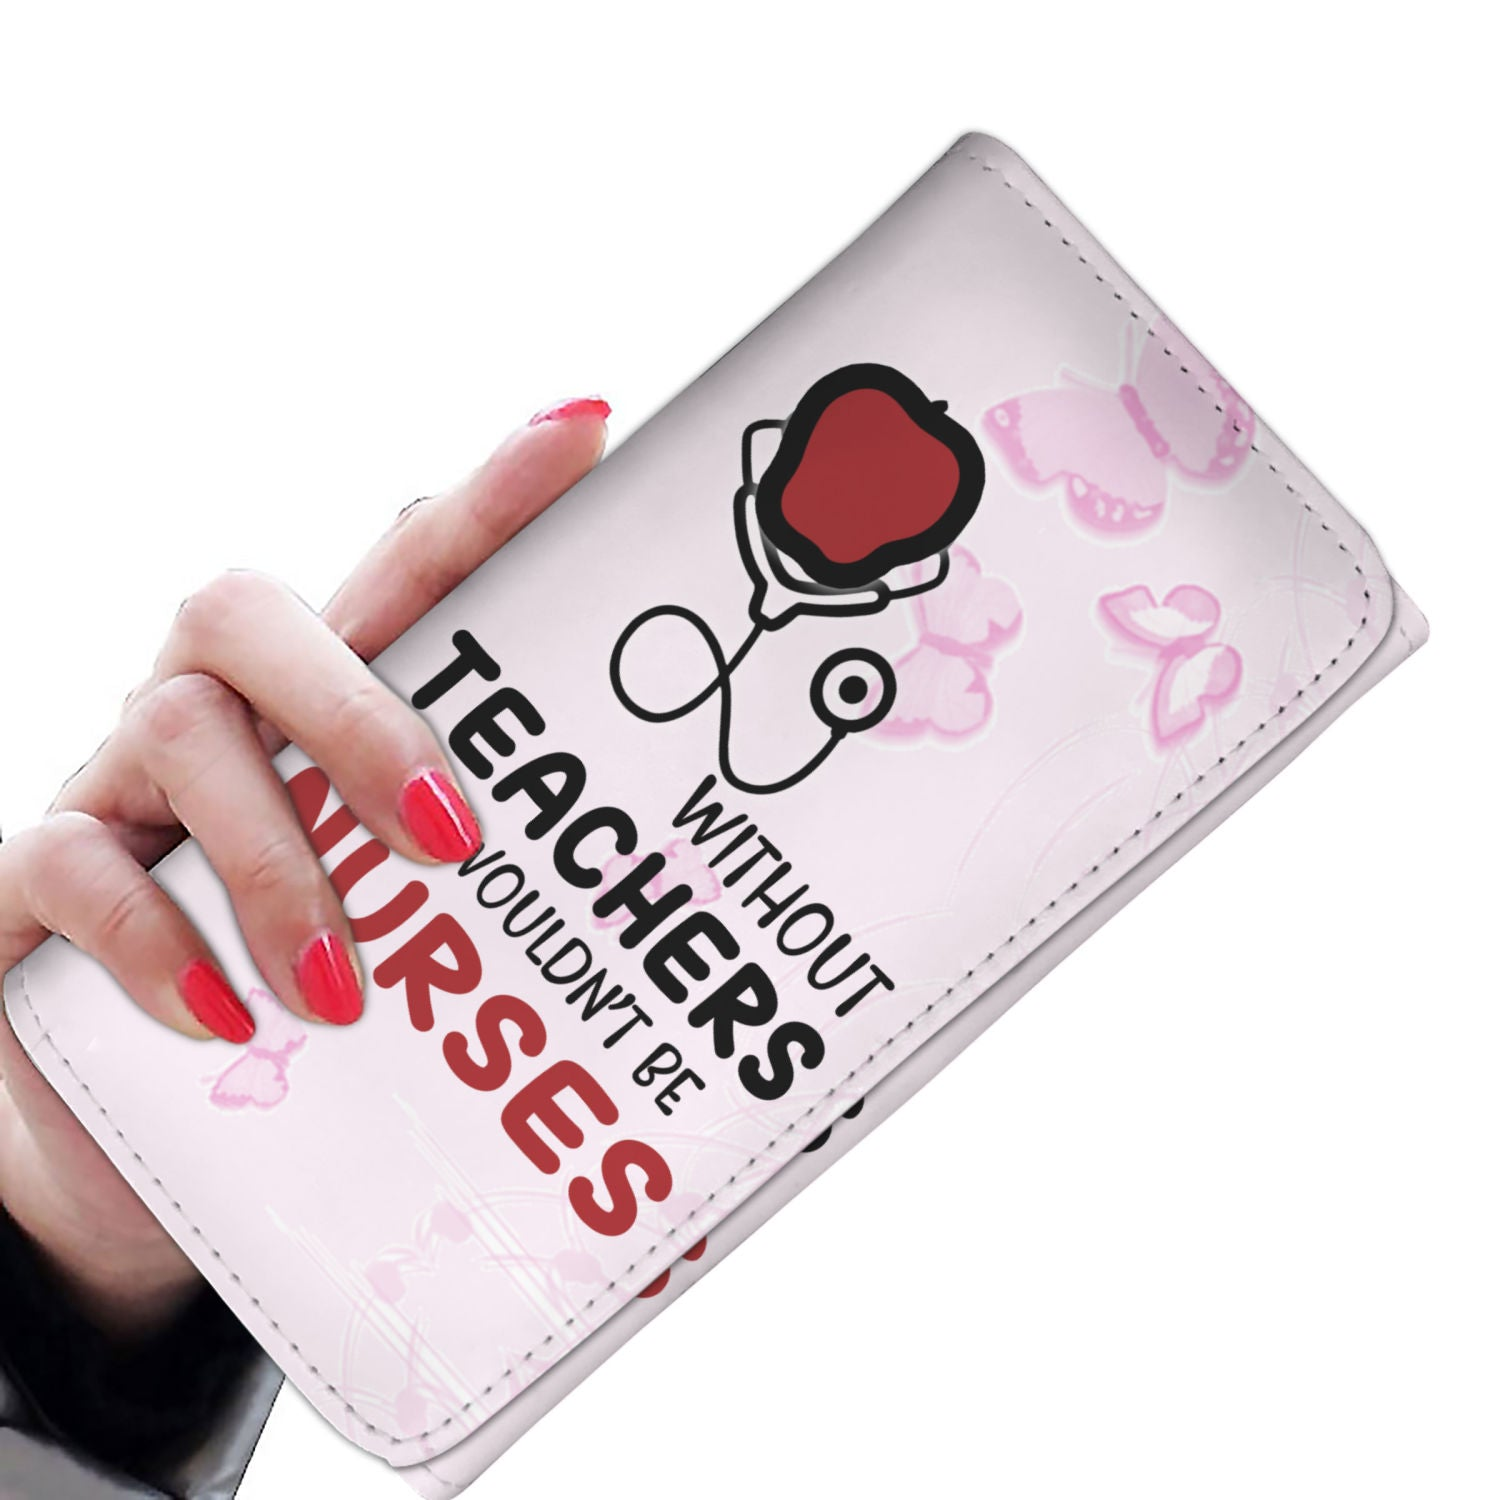 VIRA leather- like women's wallet for awesome teachers & nurses